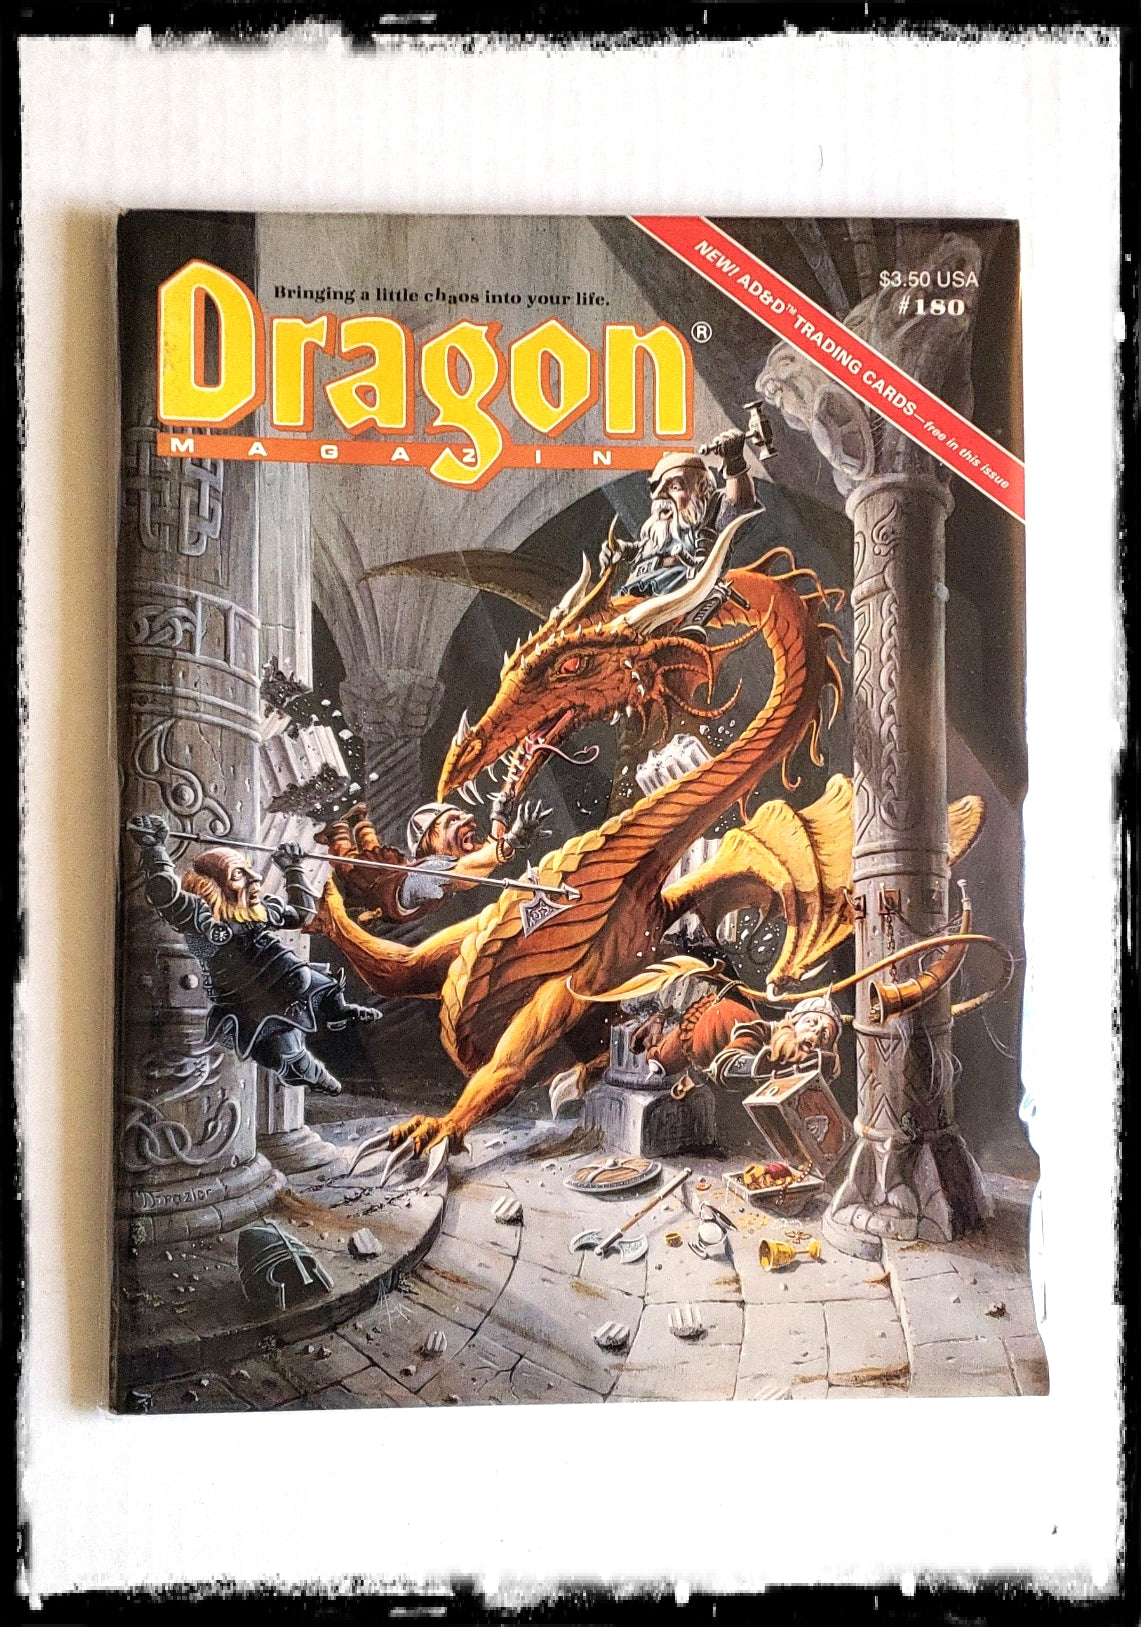 DRAGON MAGAZINE - ISSUE # 180 (CONDITION - FINE)